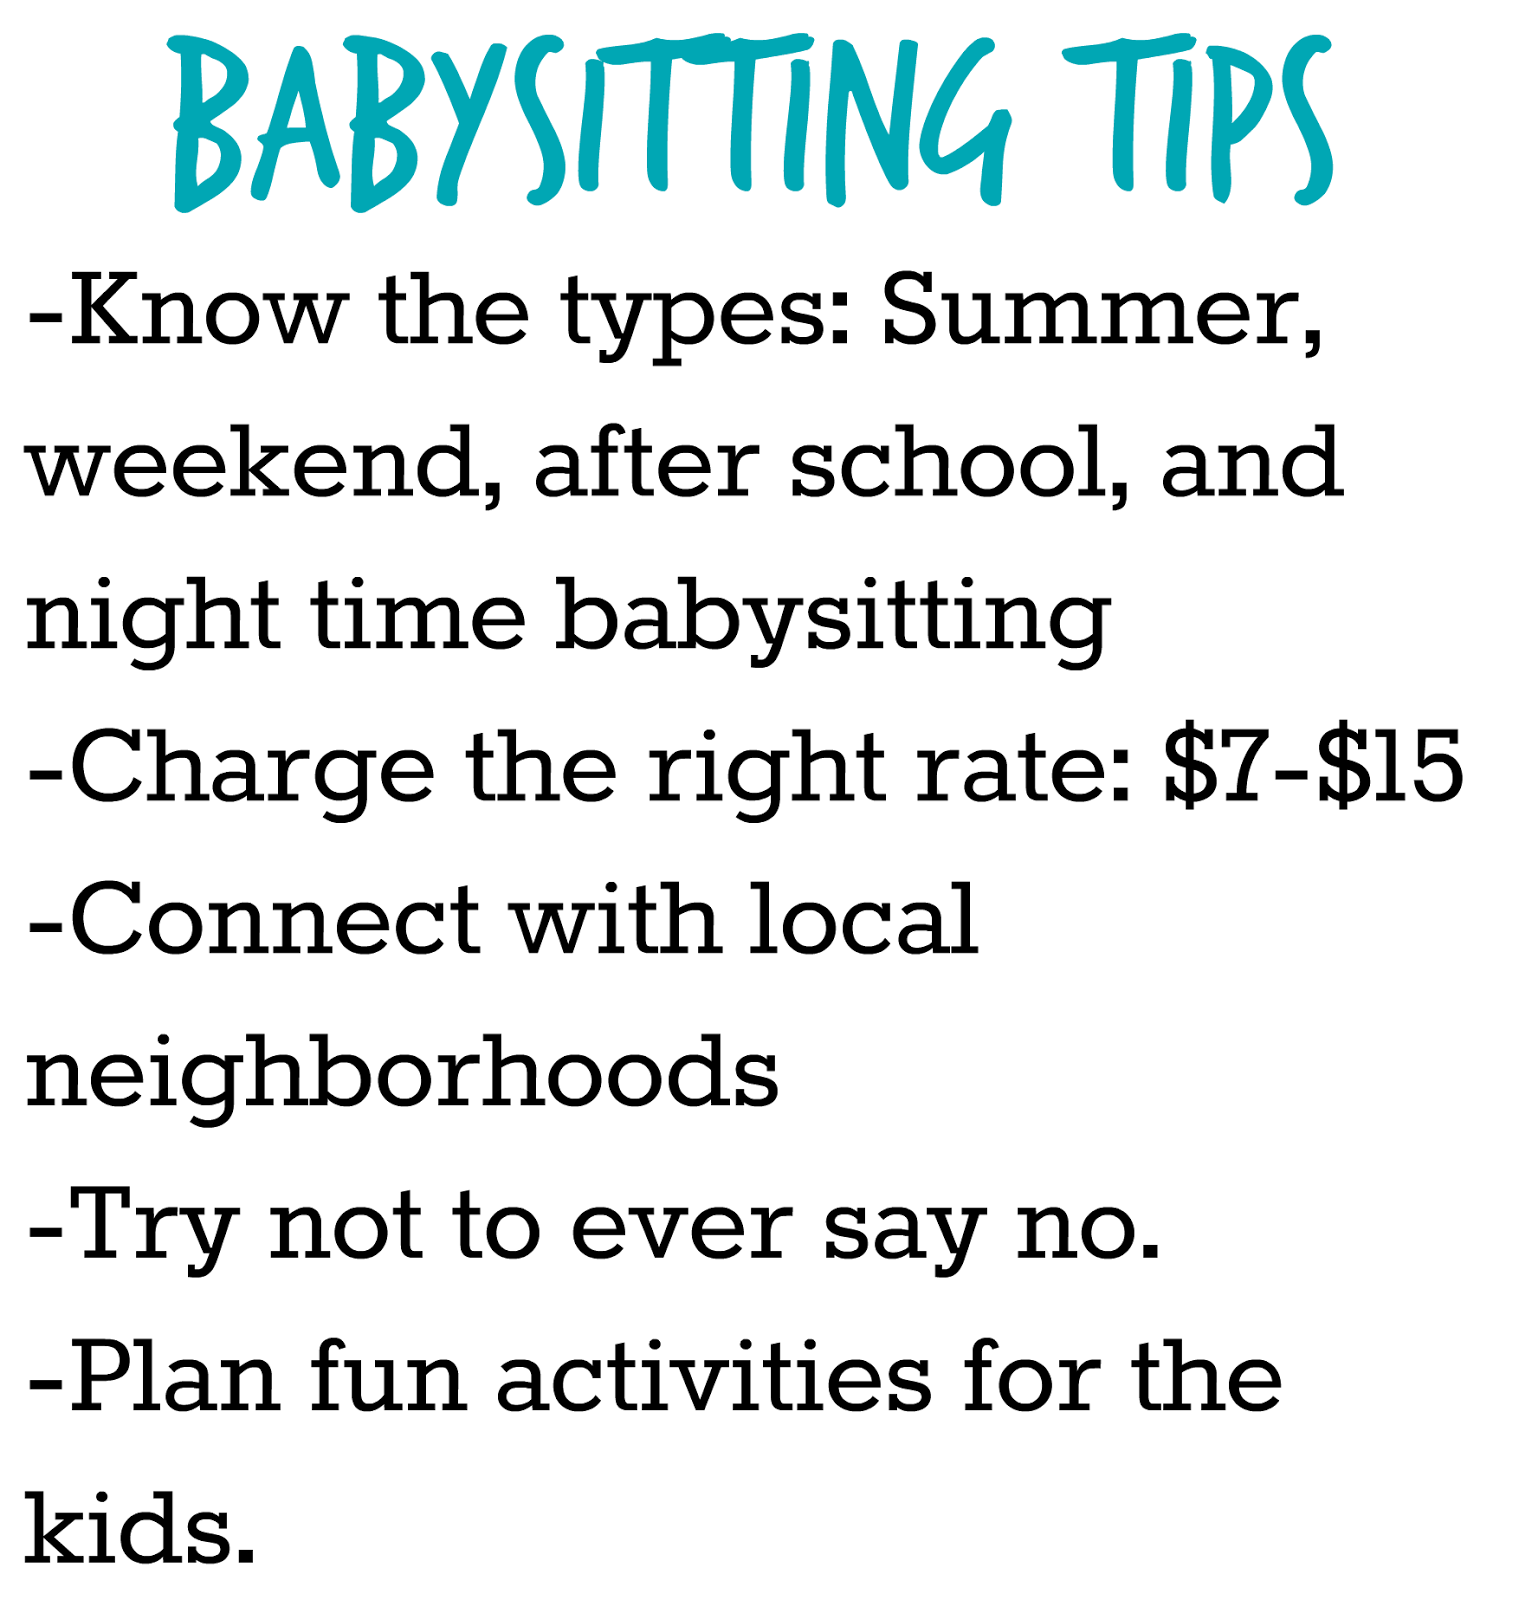 im planning on doing some more babysitting posts featuring some fun things to do while babysitting and how to be successful babysitting is a really great